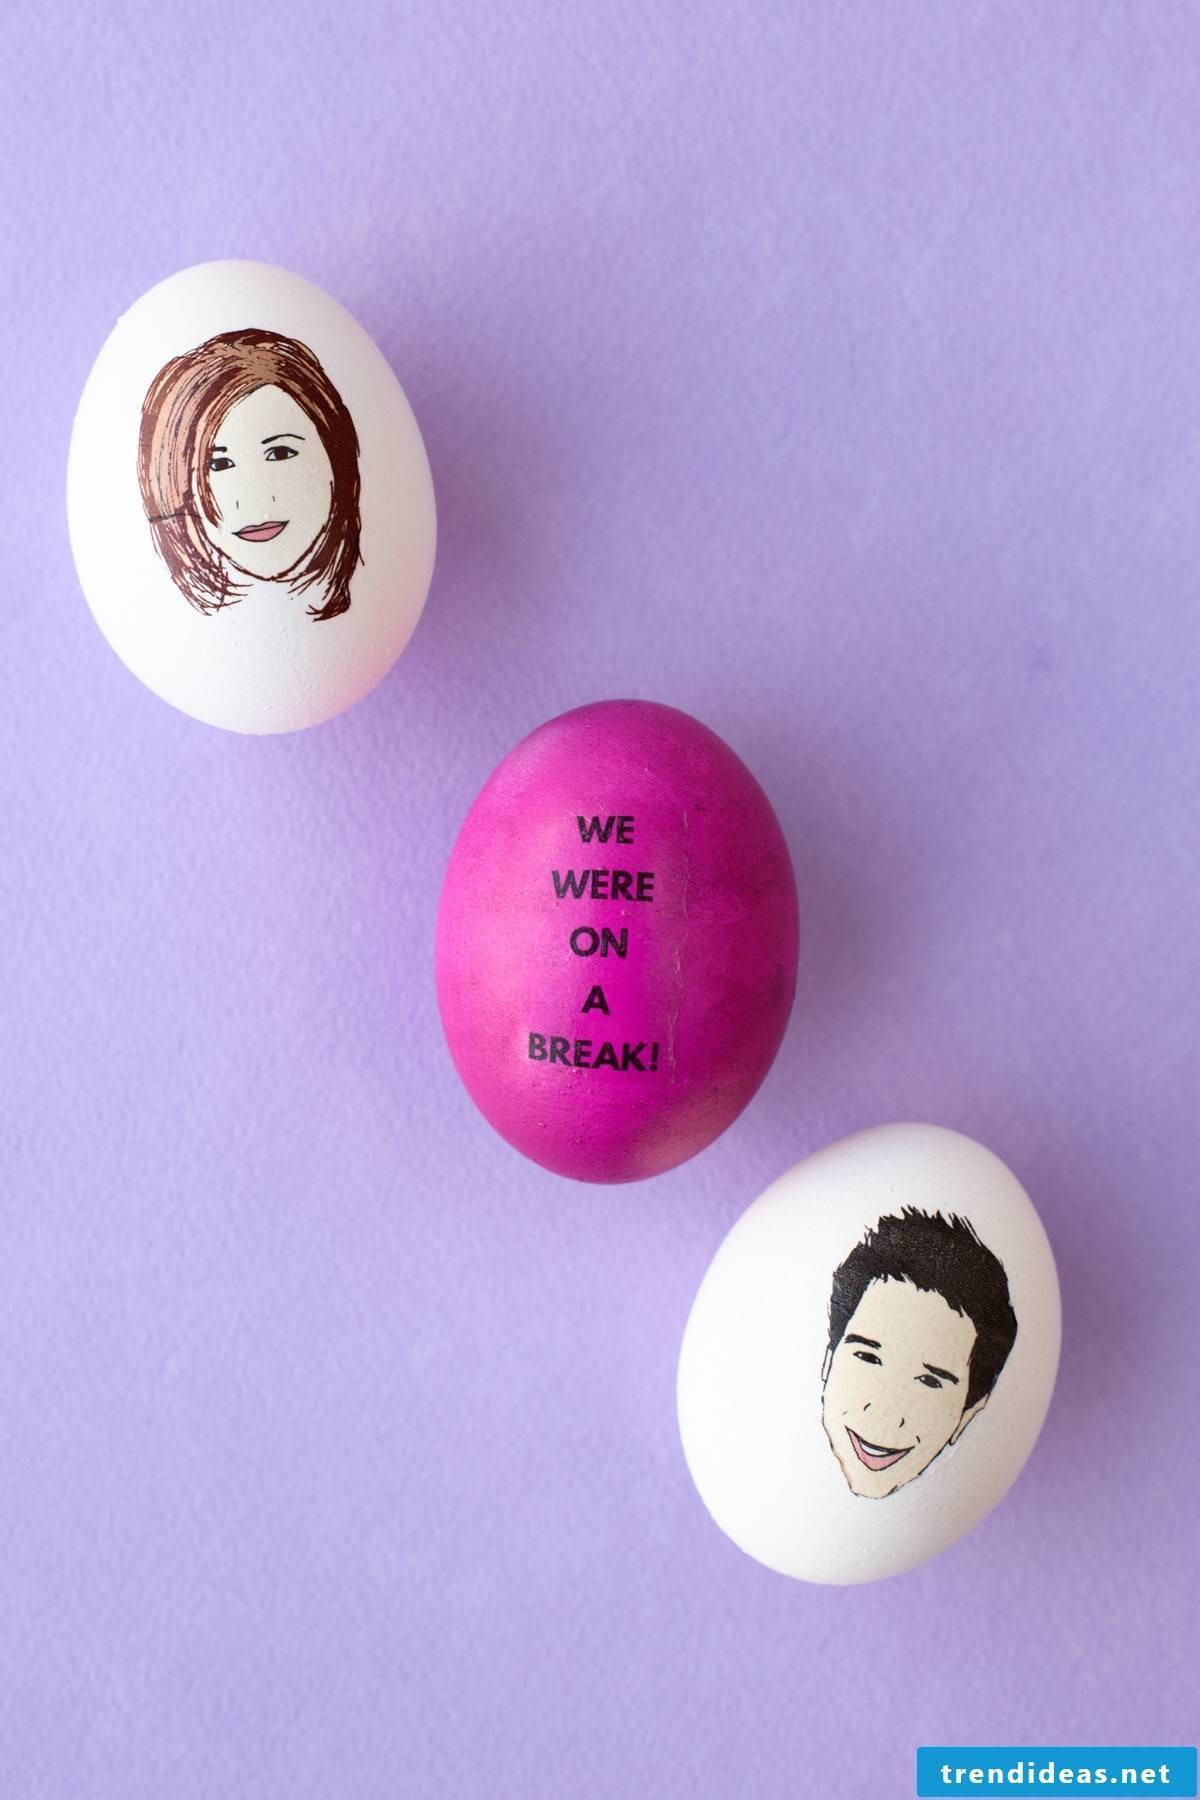 Make Easter eggs with faces of celebrities themselves